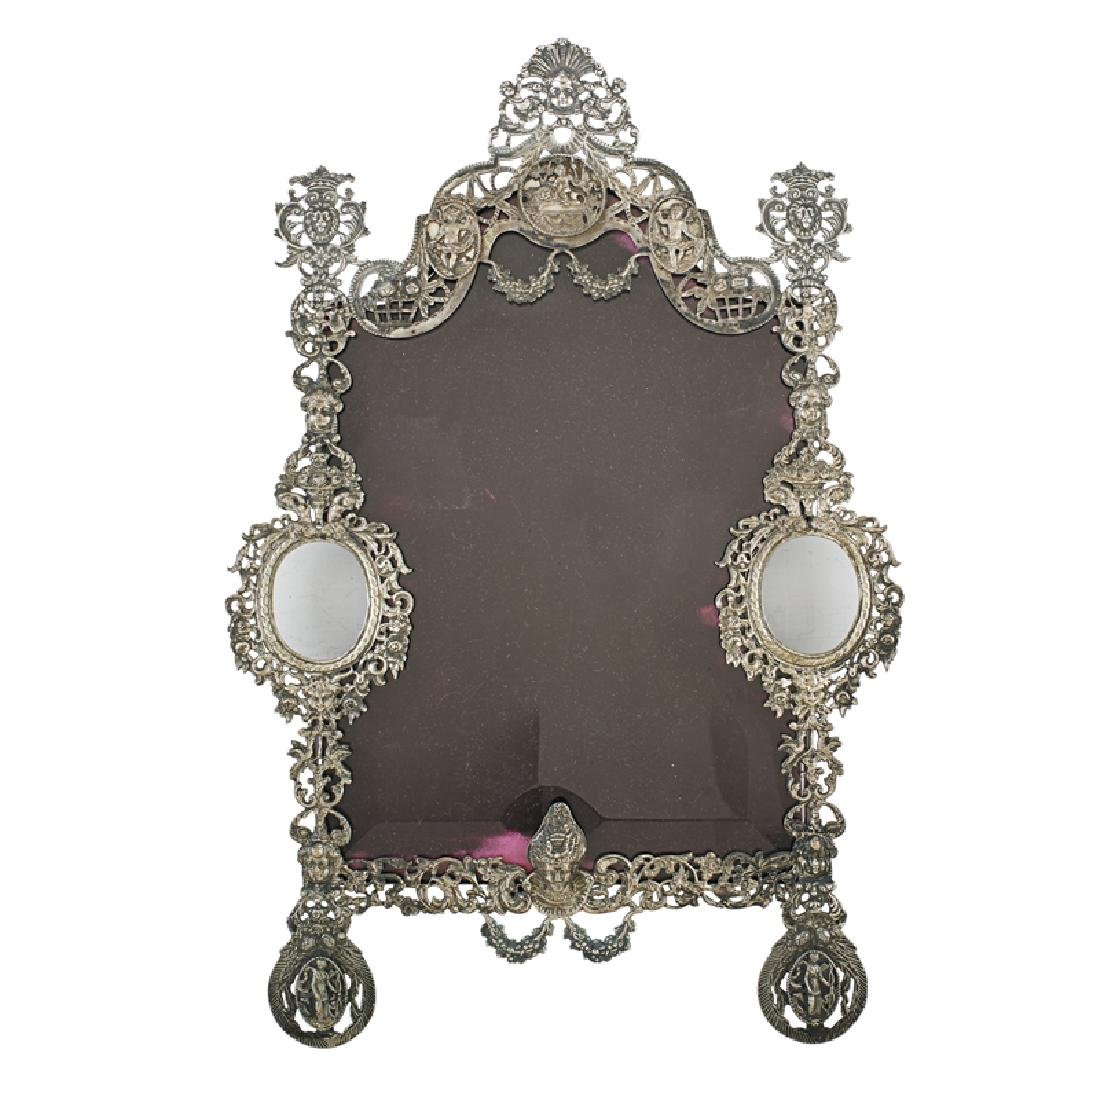 DUTCH VICTORIAN SILVER PICTURE FRAME